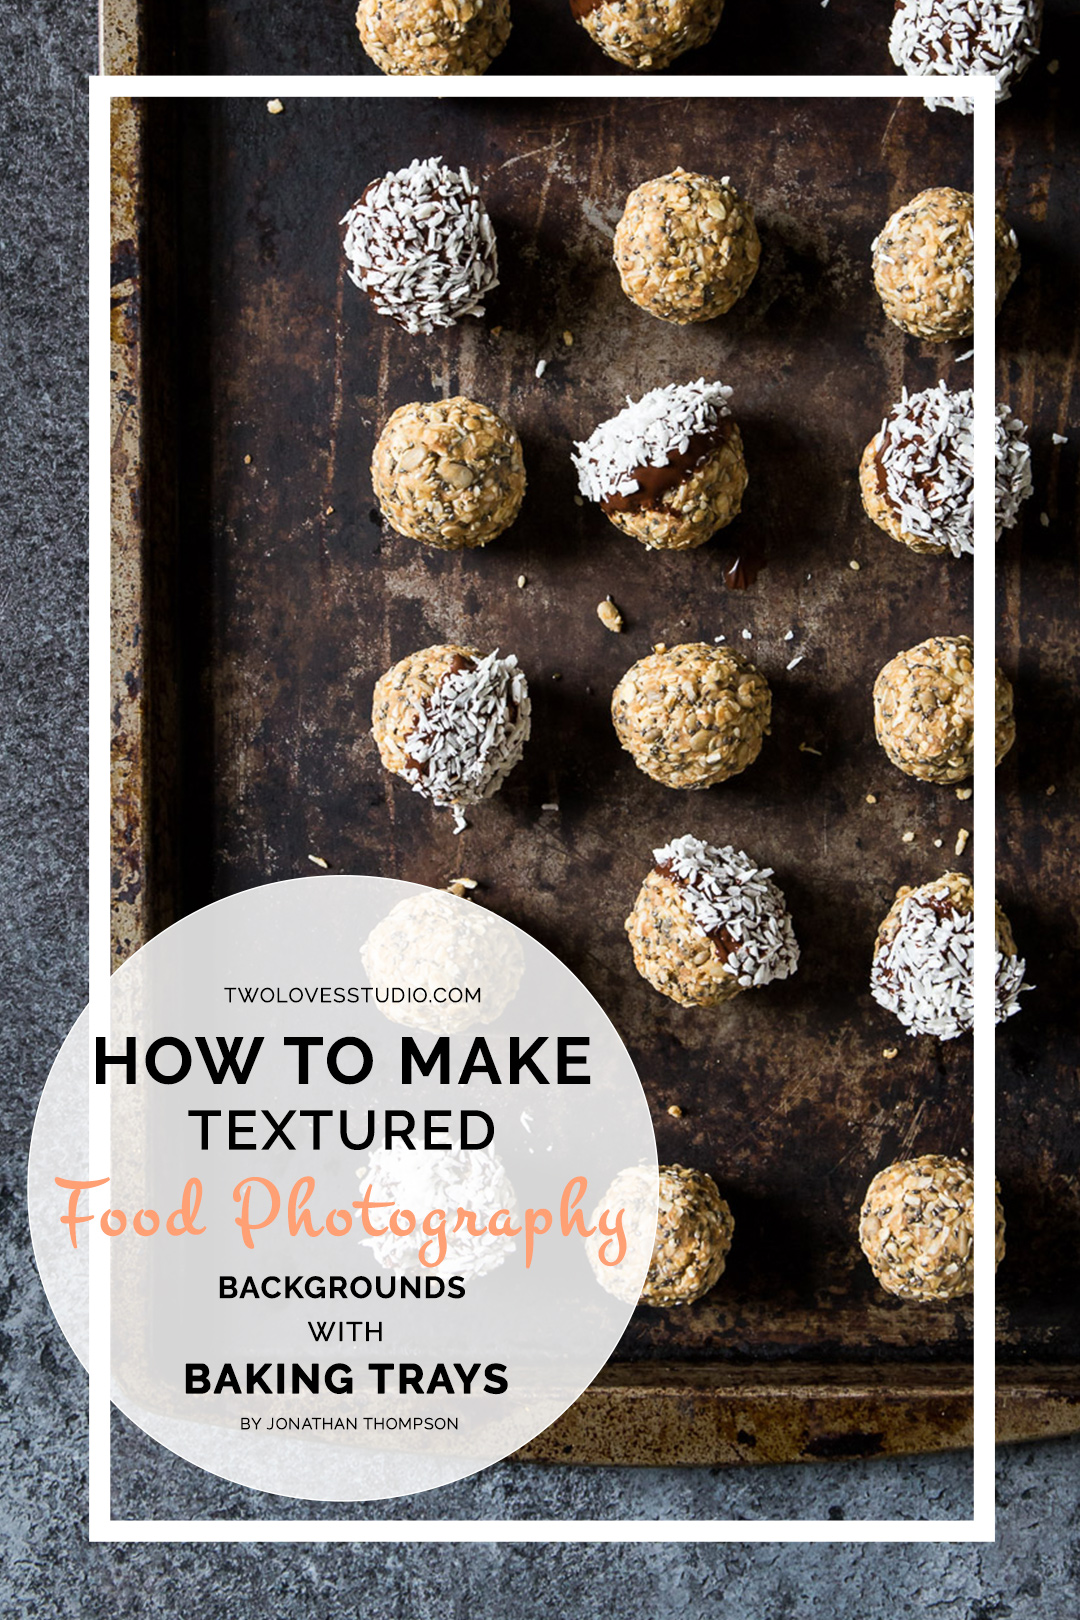 How To Make Textured Food Photography Backgrounds with Baking Trays | In just 5 steps, I'm going to share one way I get interesting food photography backgrounds with metal baking trays to bring new dimensions and texture to your images. Click to get the look!